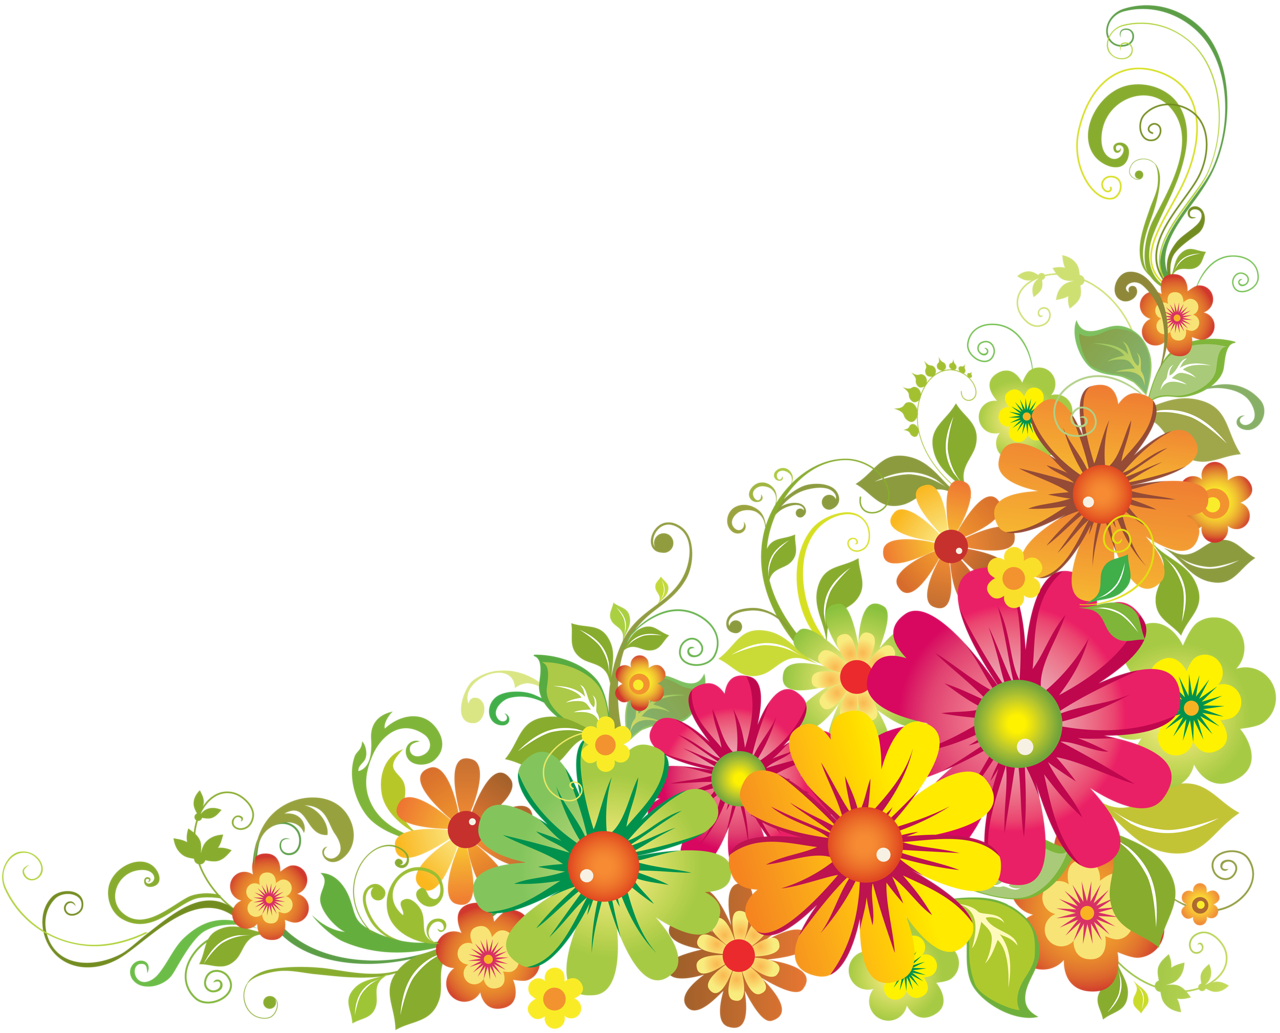 Flower corner border clipart free svg freeuse library 0_64762_703f1e17_orig.png | Pinterest | Clip art, Corner and ... svg freeuse library